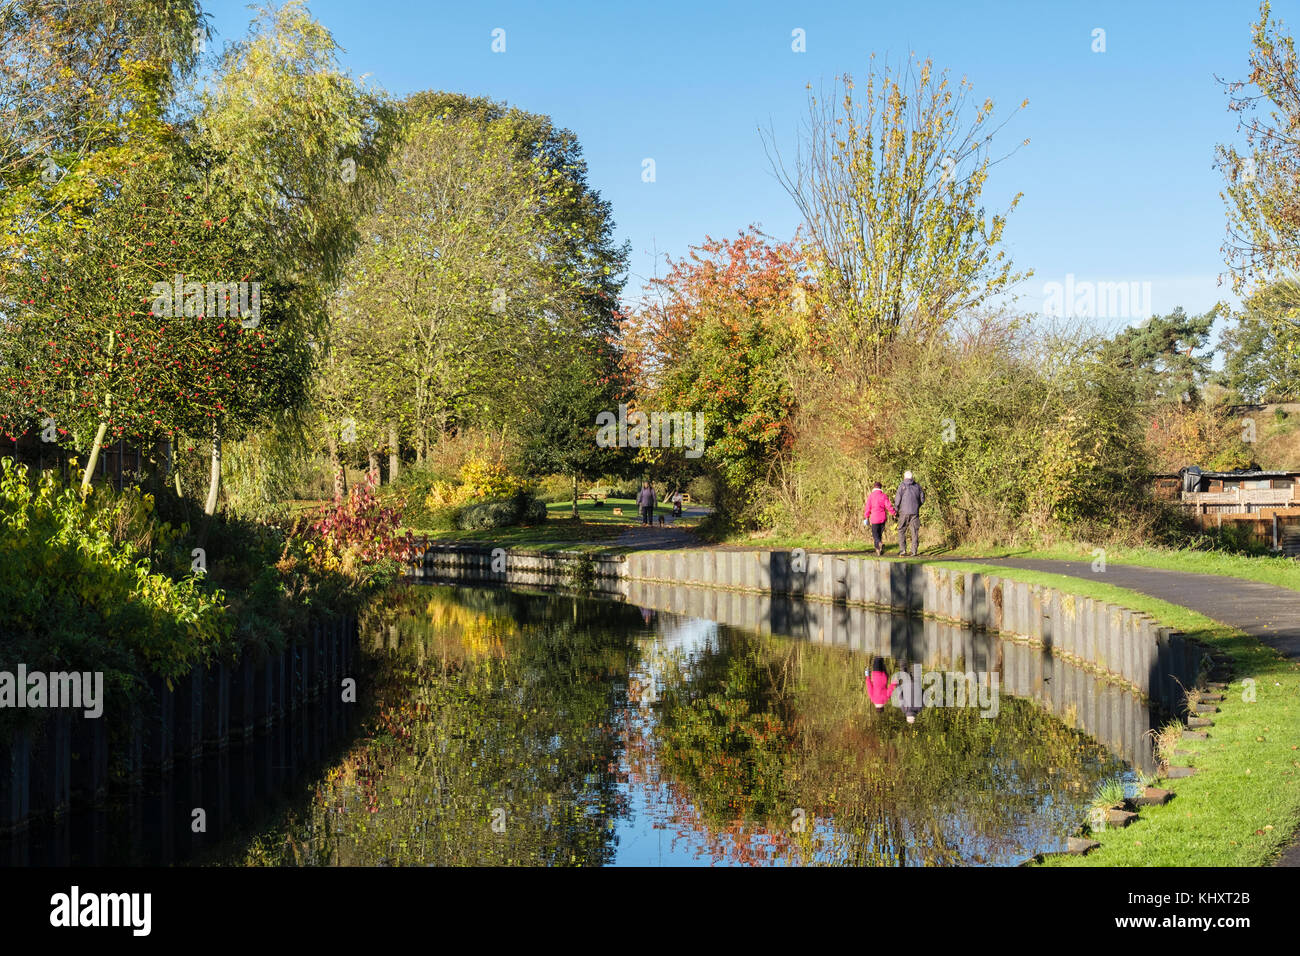 People walking on Droitwich canal towpath in Vines Park in autumn. Droitwich Spa, Worcestershire, England, UK, Britain Stock Photo